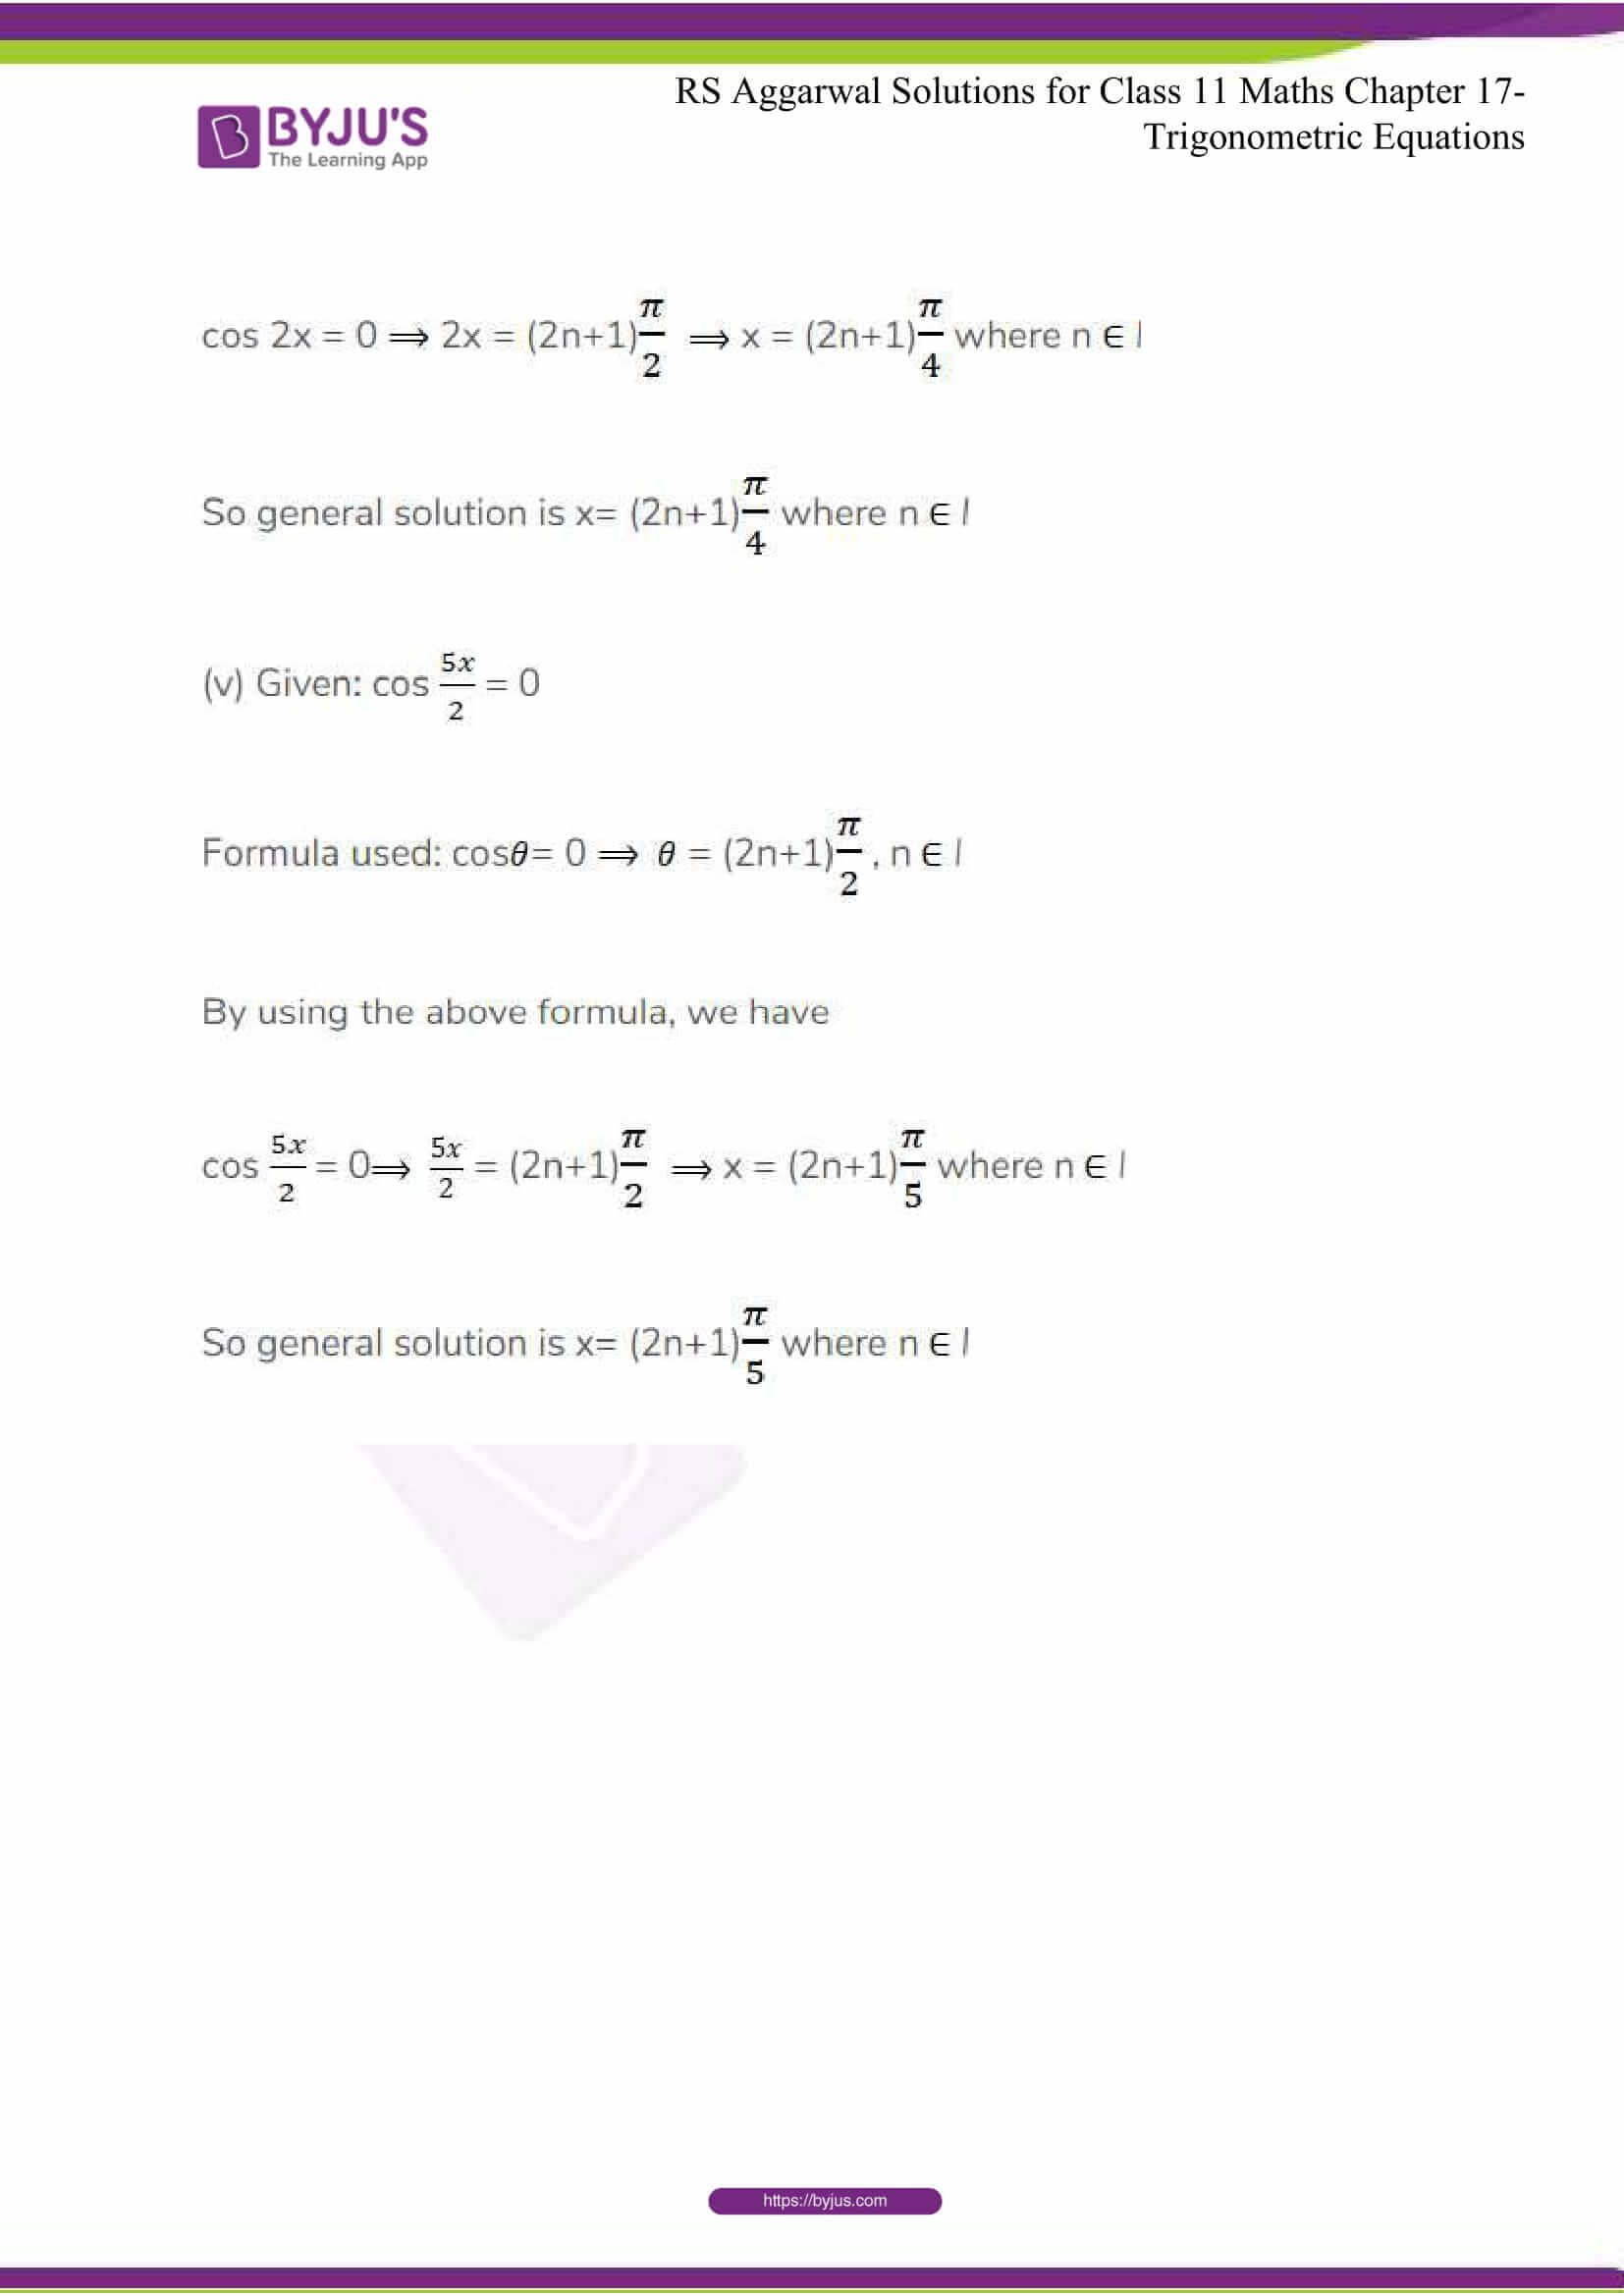 rsaggarwal solutions class 11 maths chapter 17 18